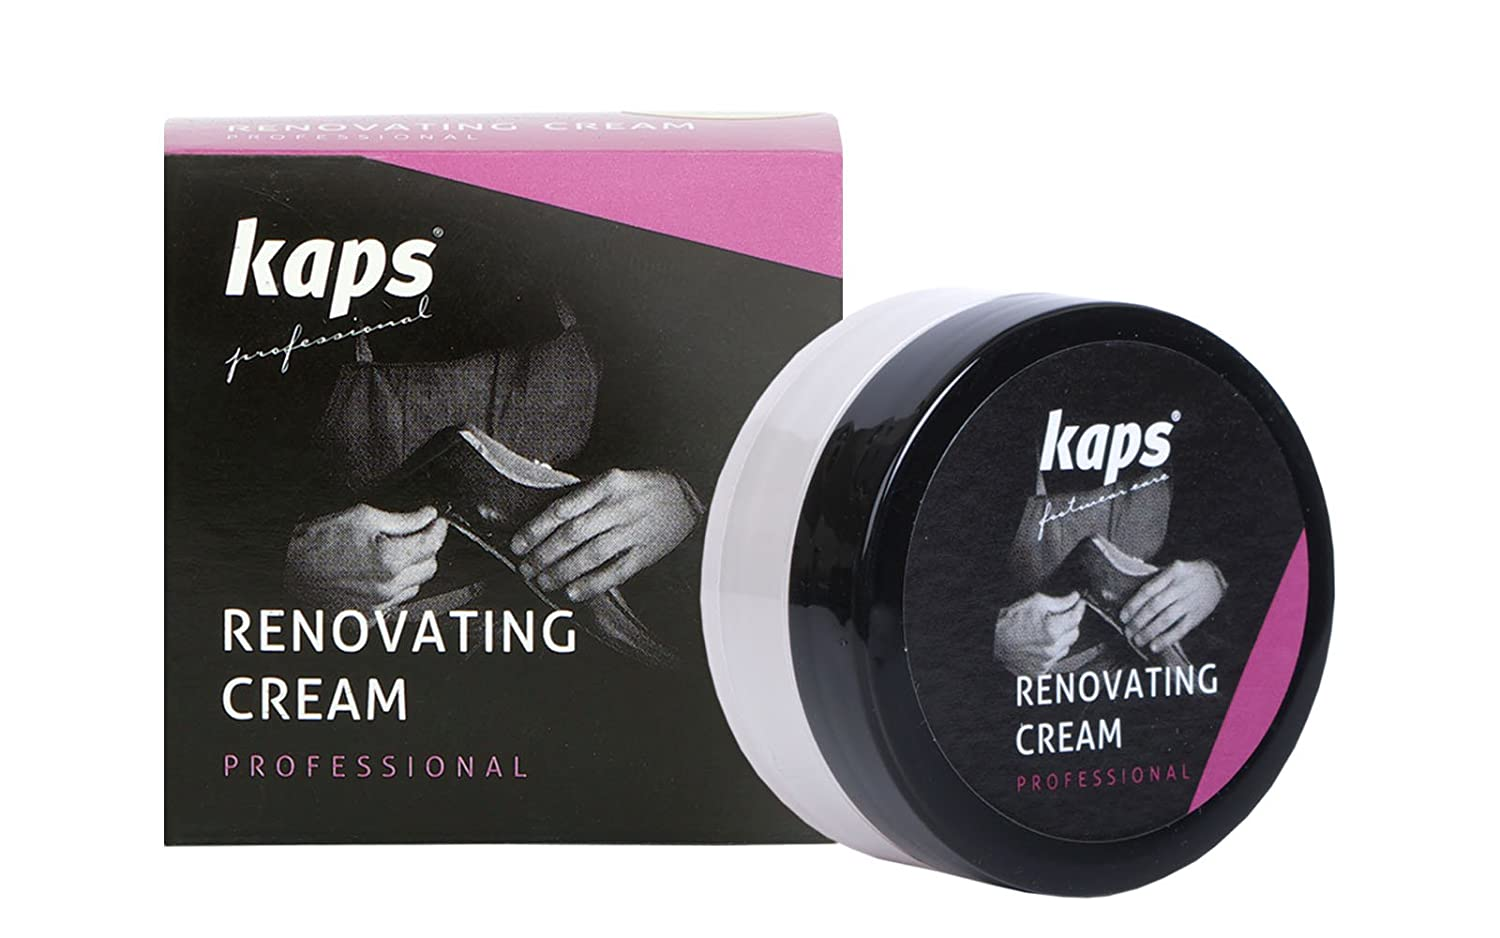 Renovating repair shoe cream for smooth leather, scratch and scuff cover, Kaps Renovating Cream, 10 colours 04_1_5047_100